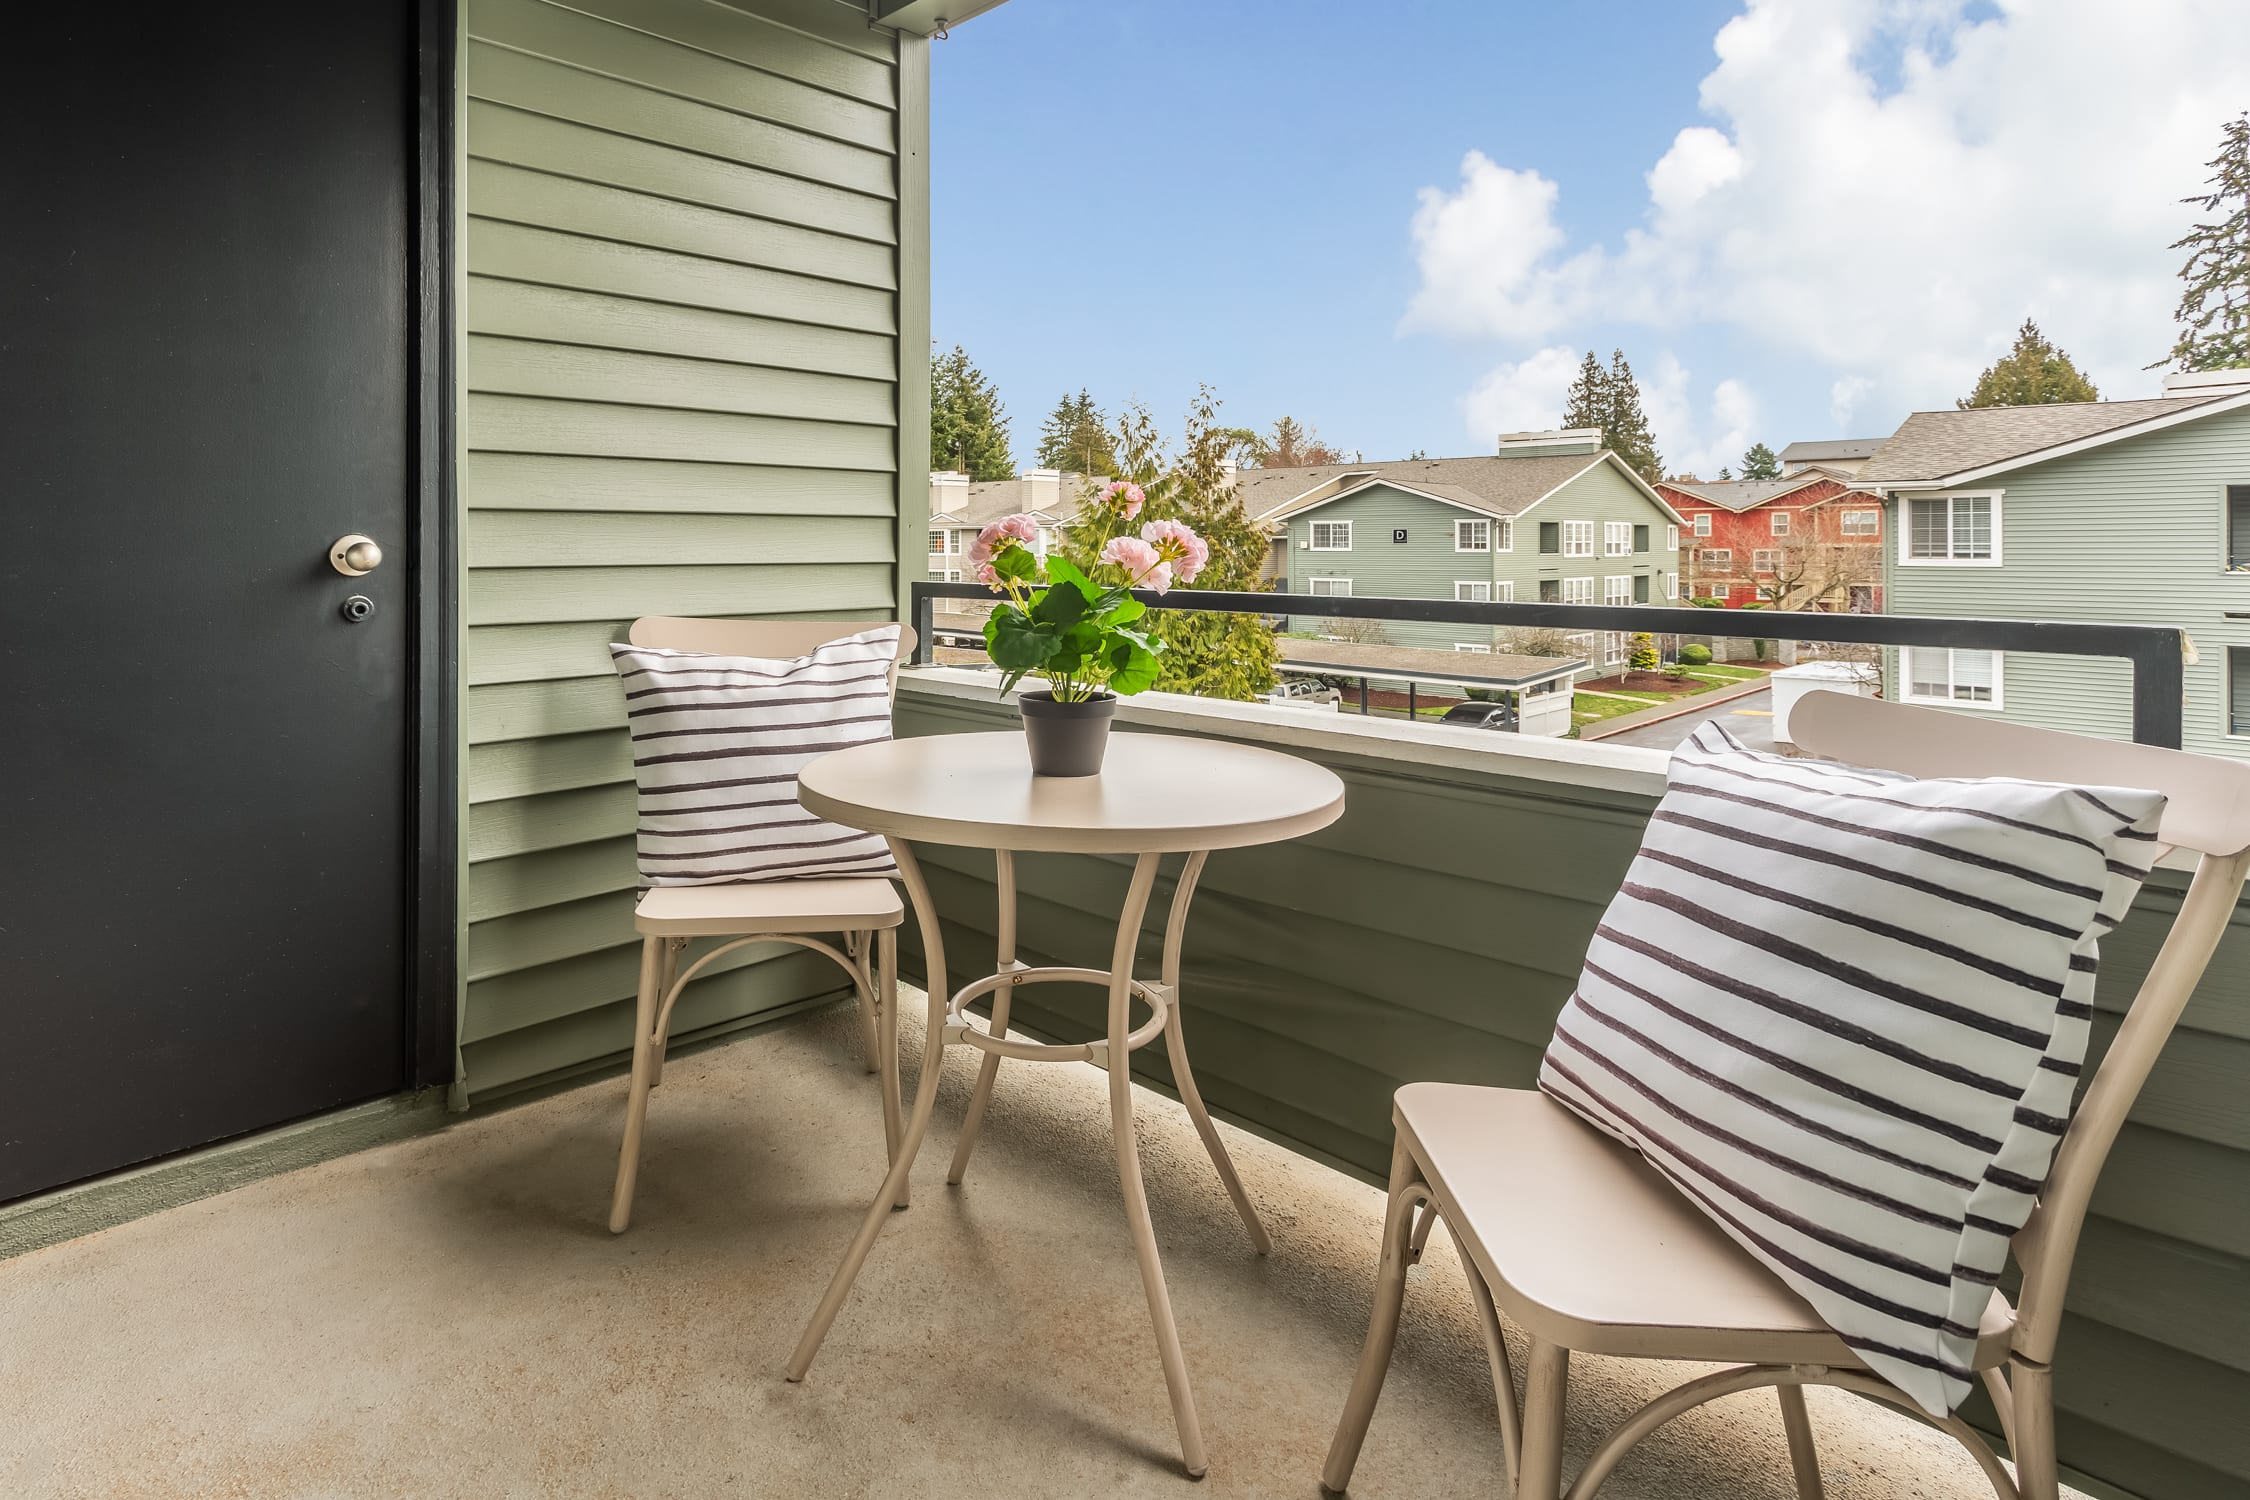 Two chairs with striped pillows, and a small table with a potted plant sit on the balcony at a Haller Post Apartment